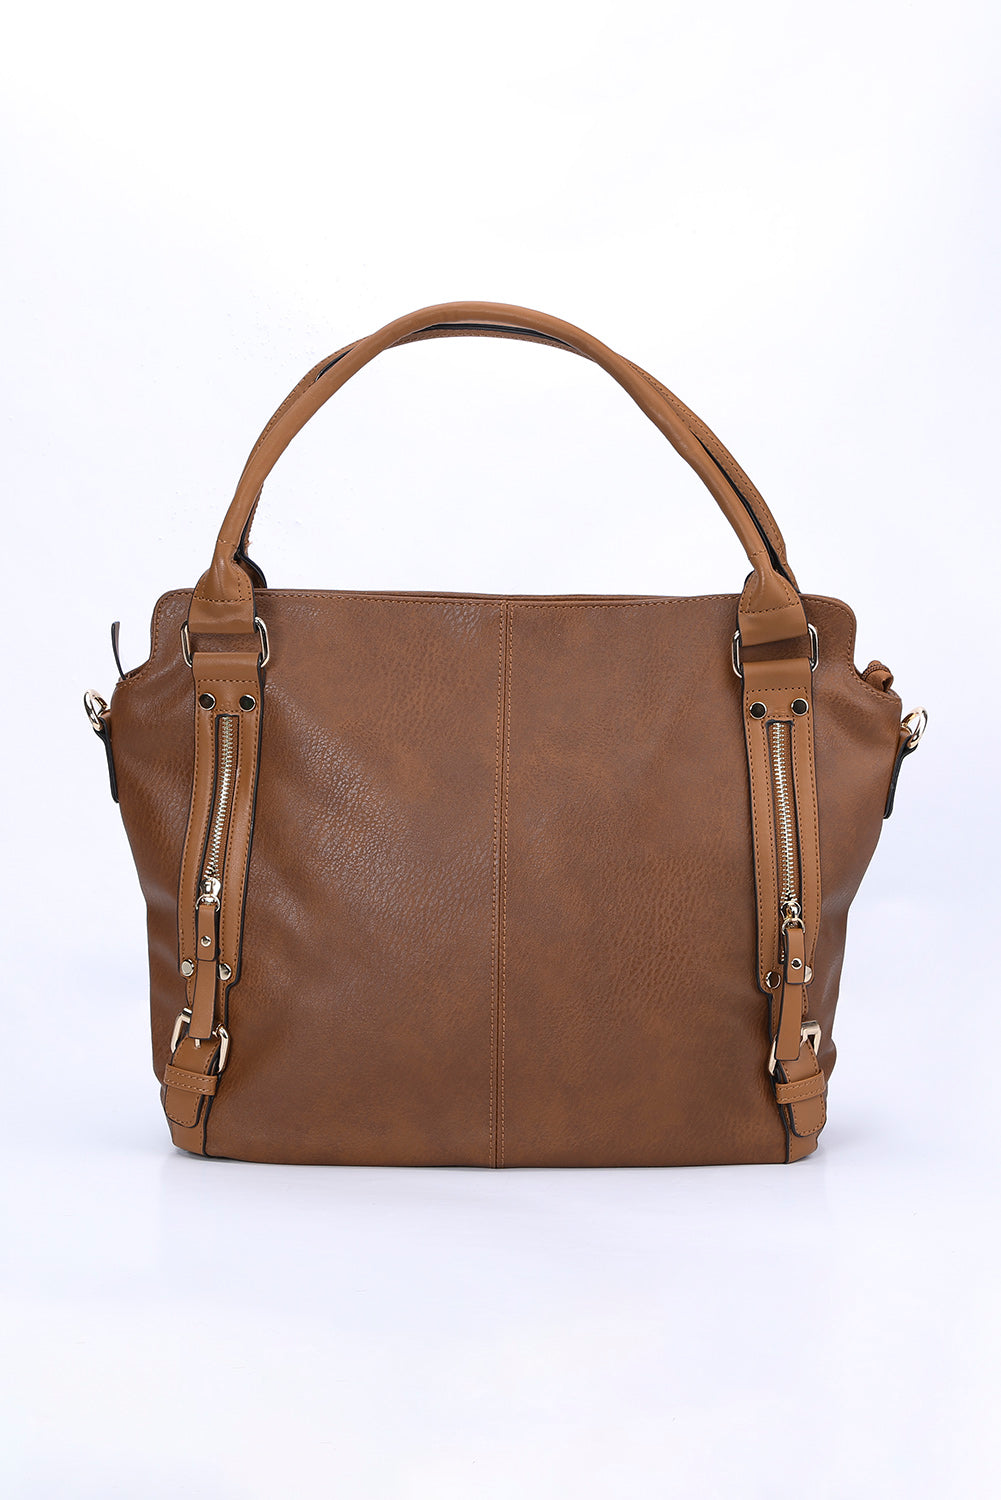 Brown Faux Leather PU Handbag